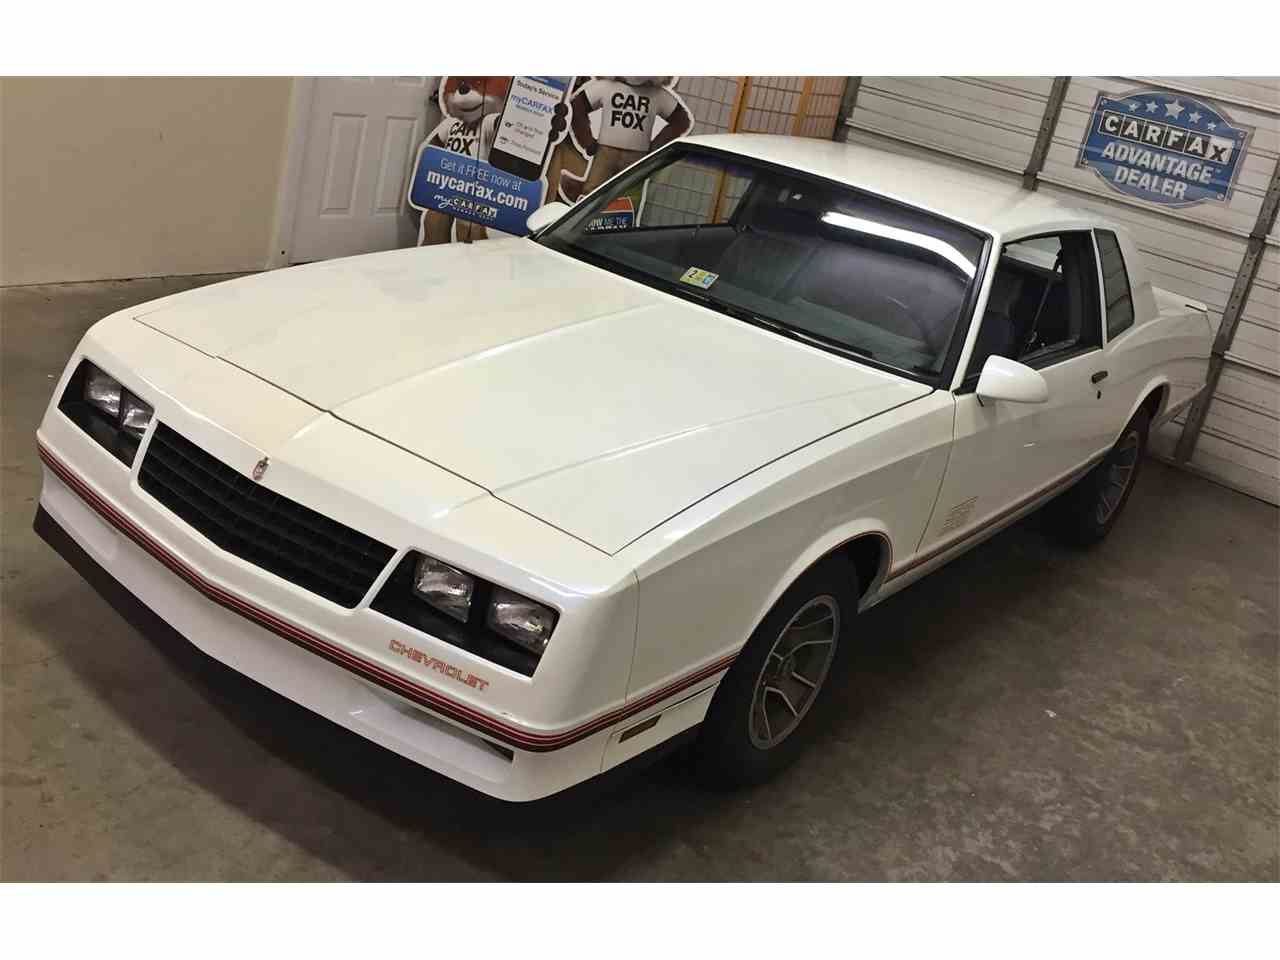 All Chevy 1988 chevrolet monte carlo ss for sale : 1988 Chevrolet Monte Carlo SS for Sale | ClassicCars.com | CC-912355